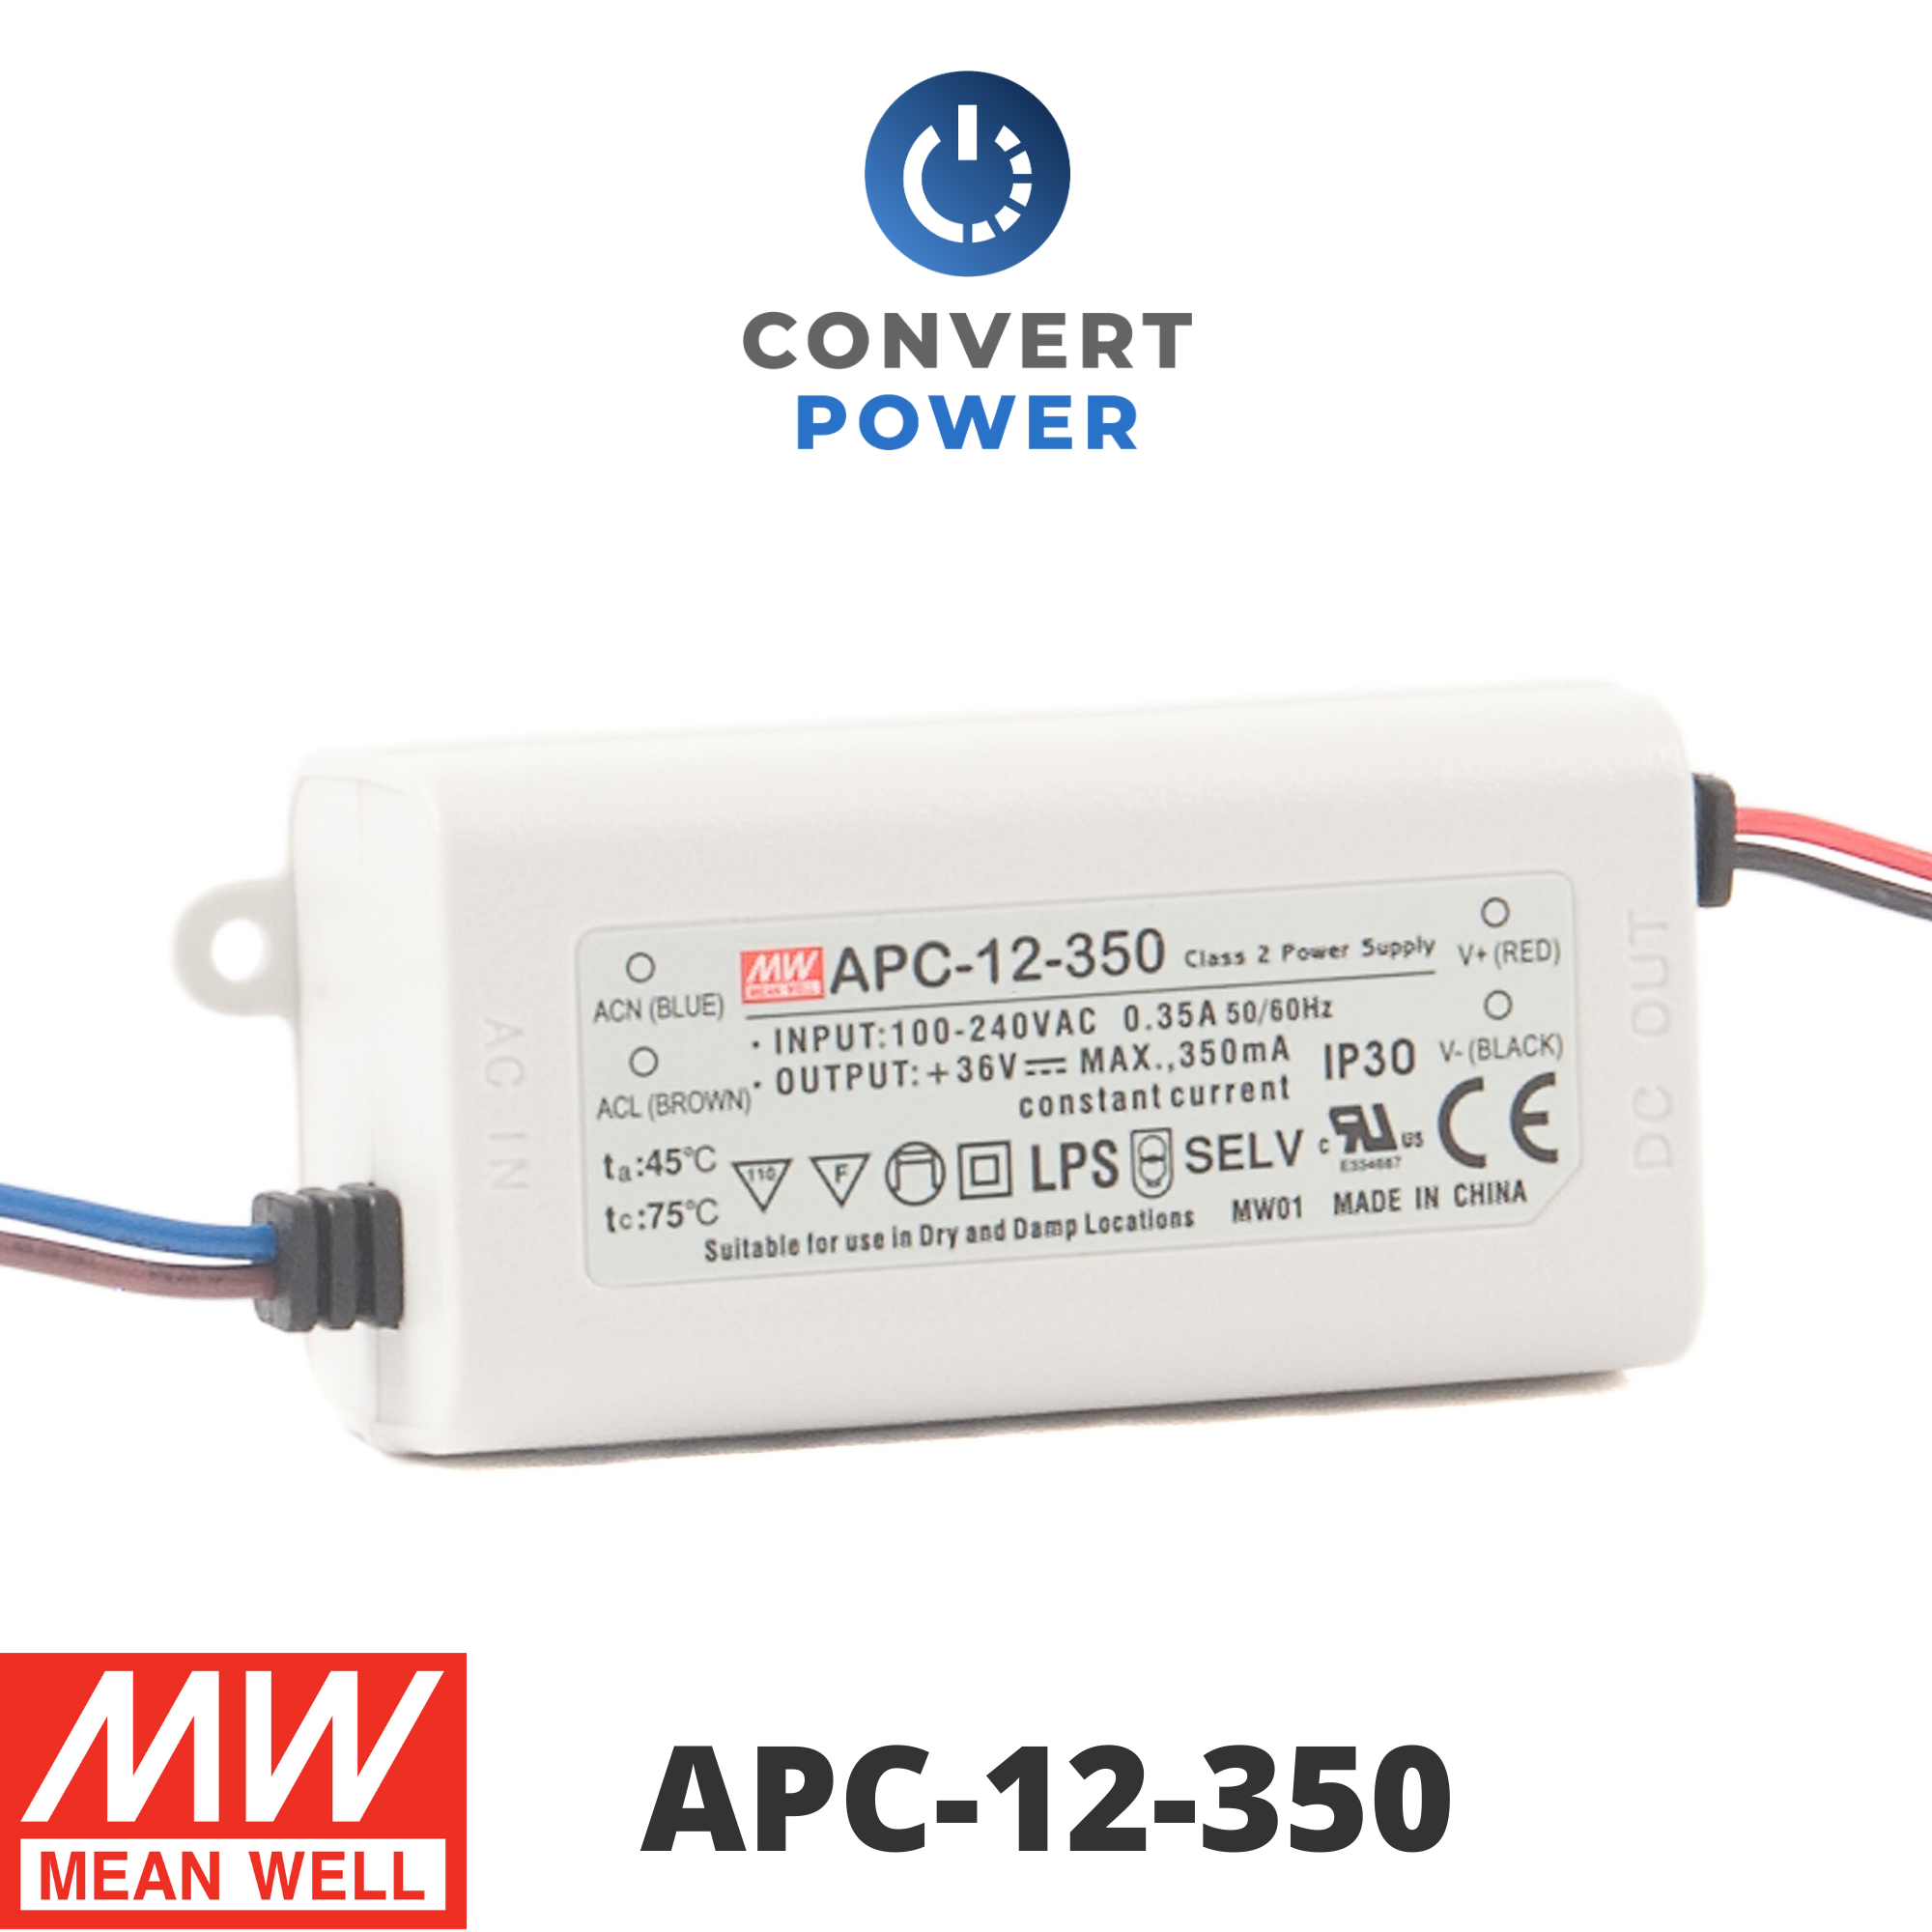 LED power supply 35W 11-33V 1050mA ; MeanWell APC-35-1050 ; Constant current